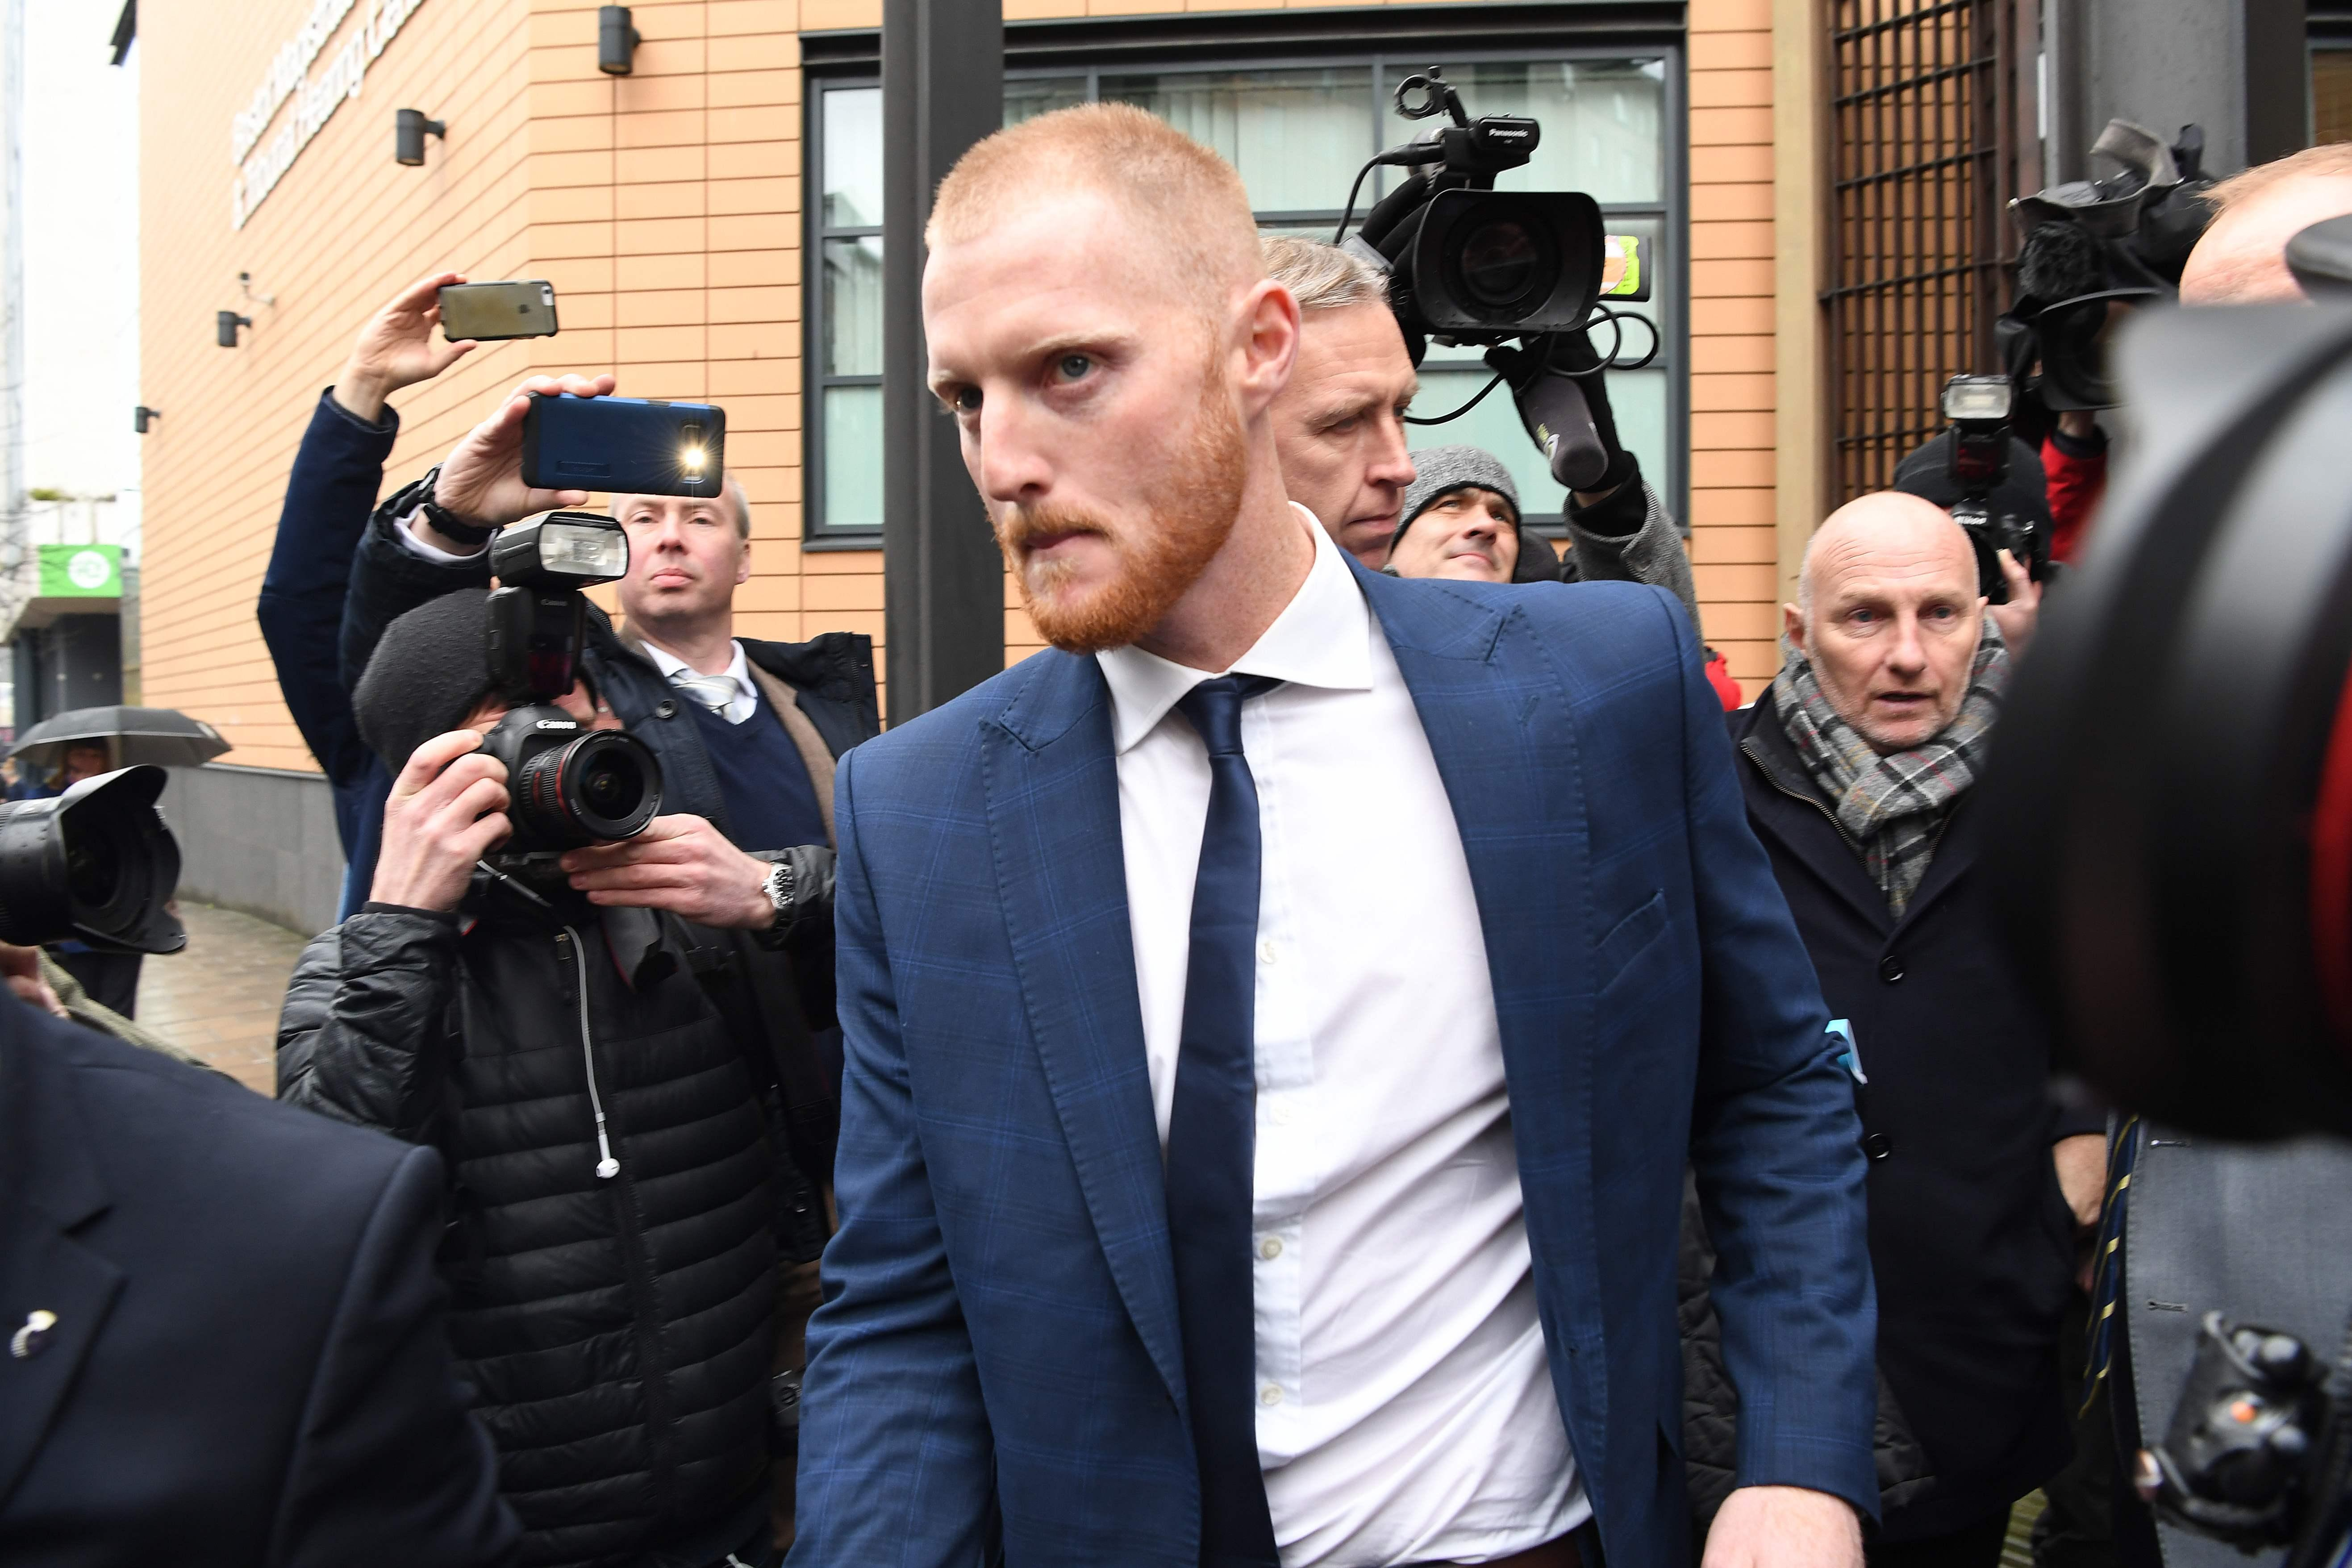 Ben Stokes will arrive at Bristol Crown Court on Monday to begin his trial